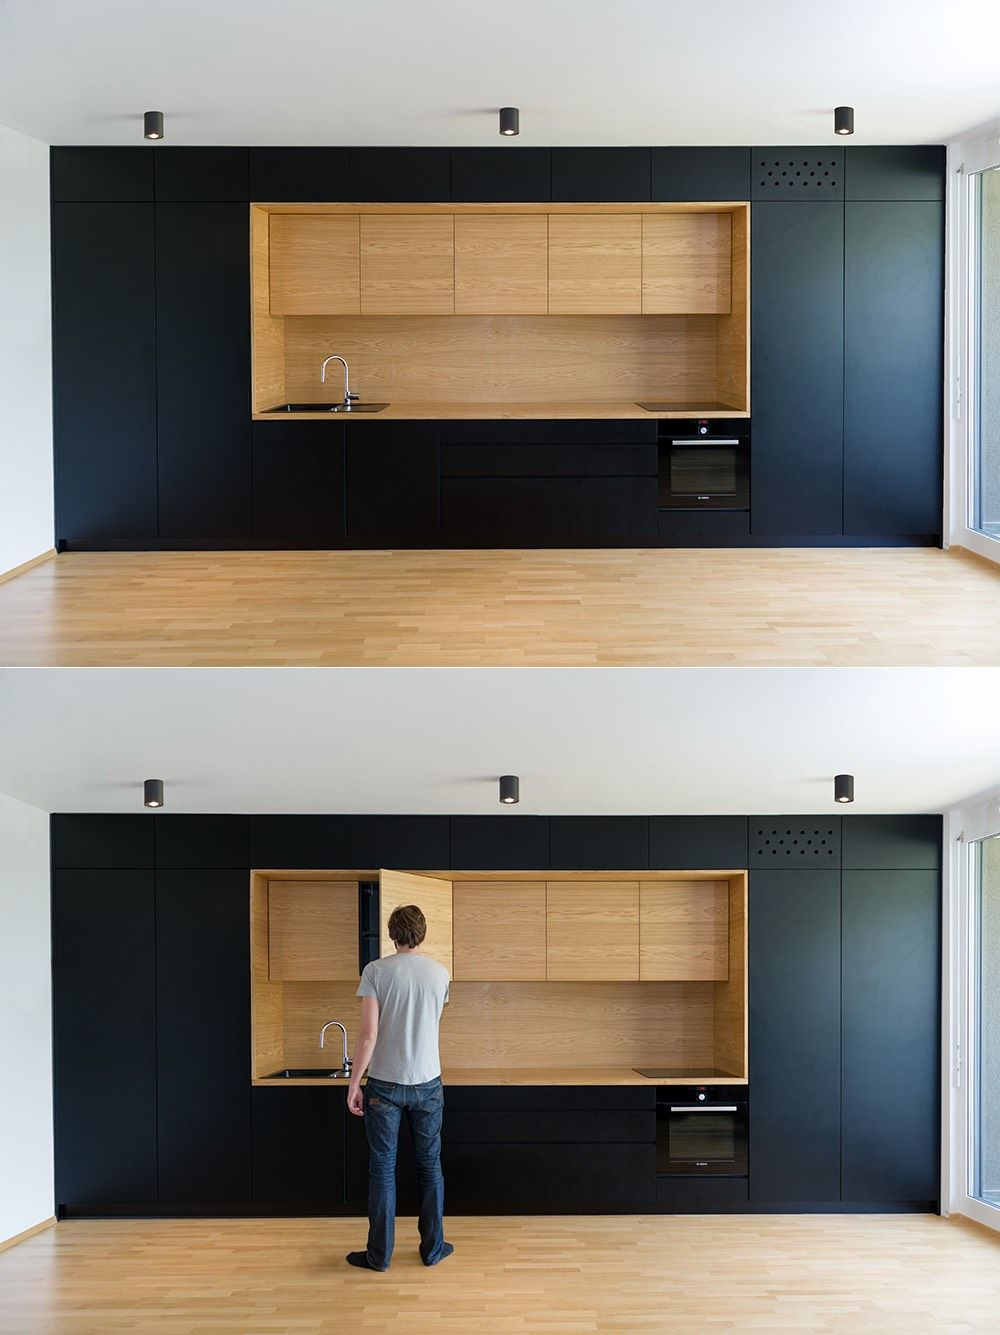 Plana Küchen Arbeitsplatten Black White Wood Kitchens Ideas Inspiration Concept